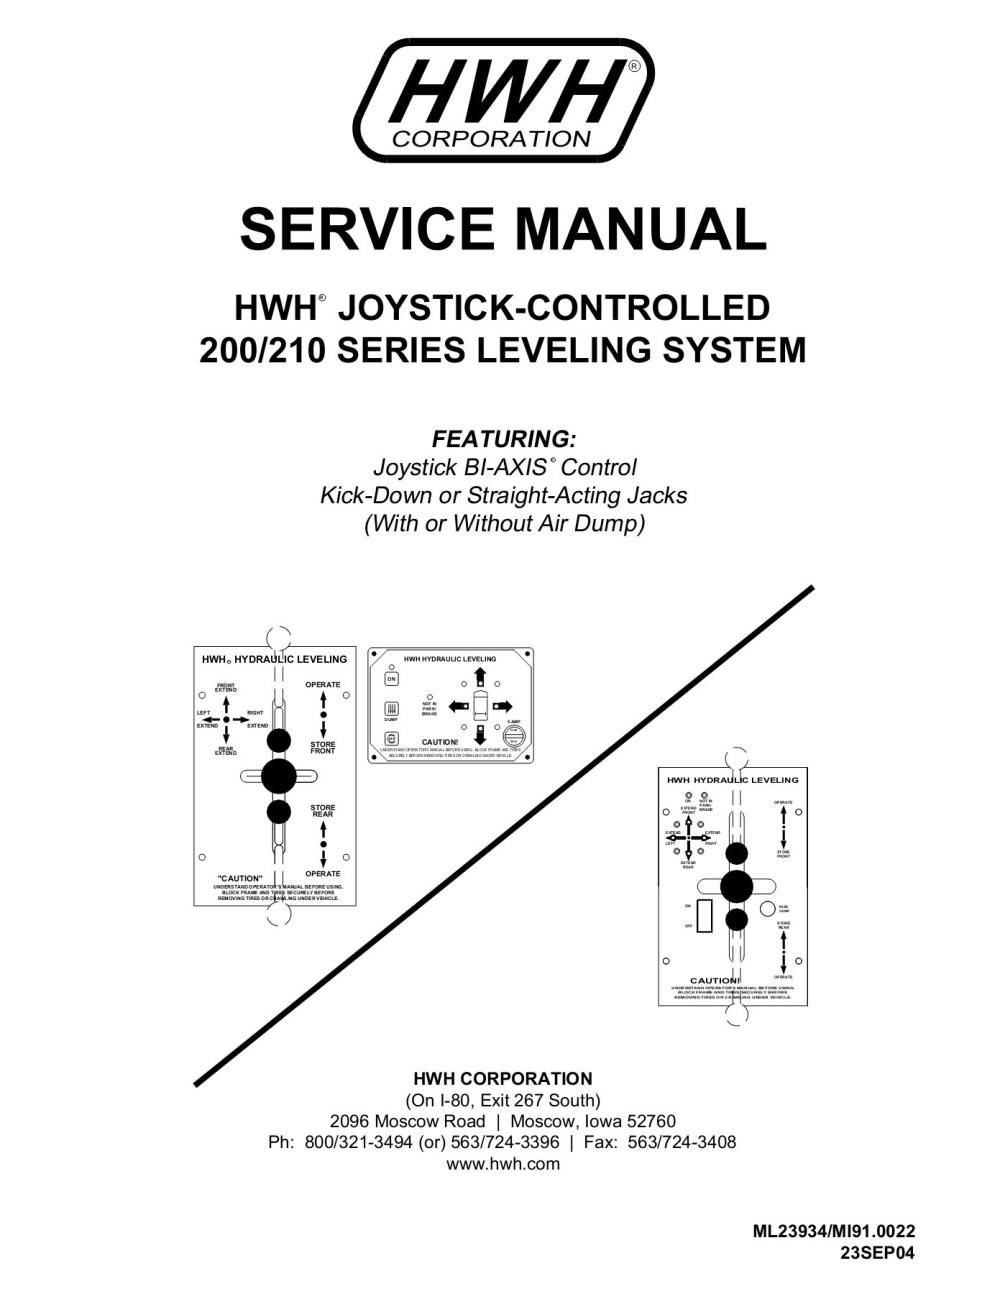 medium resolution of section 1 the trouble shooting guide hwh corporation